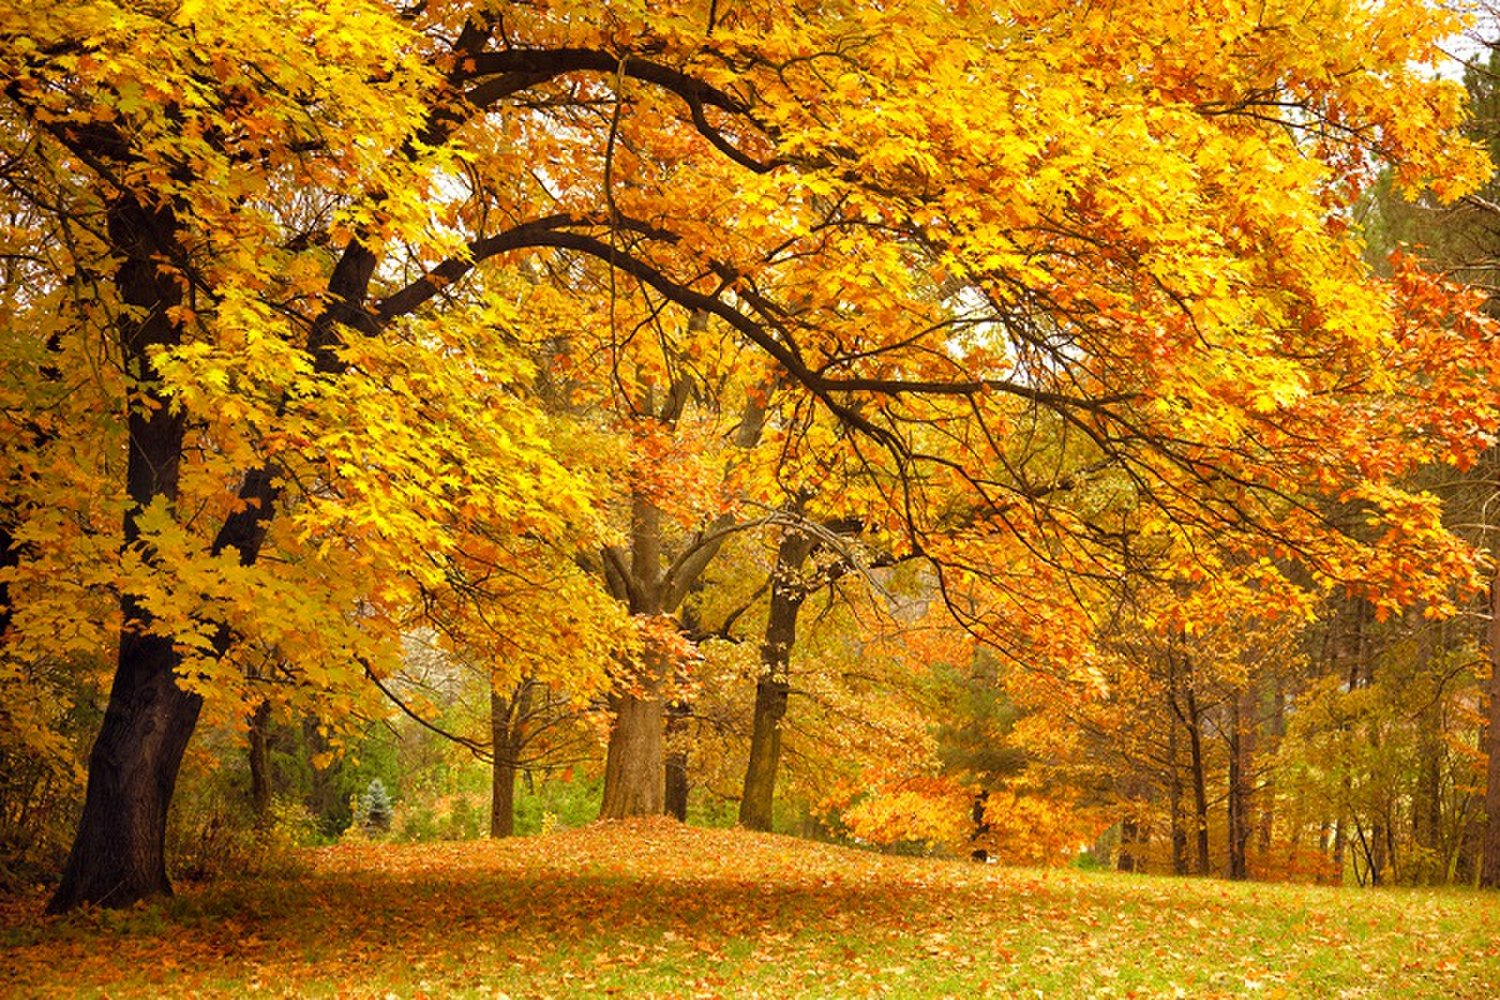 Under the Thriving Brown, Autumn time, Autumn leaves